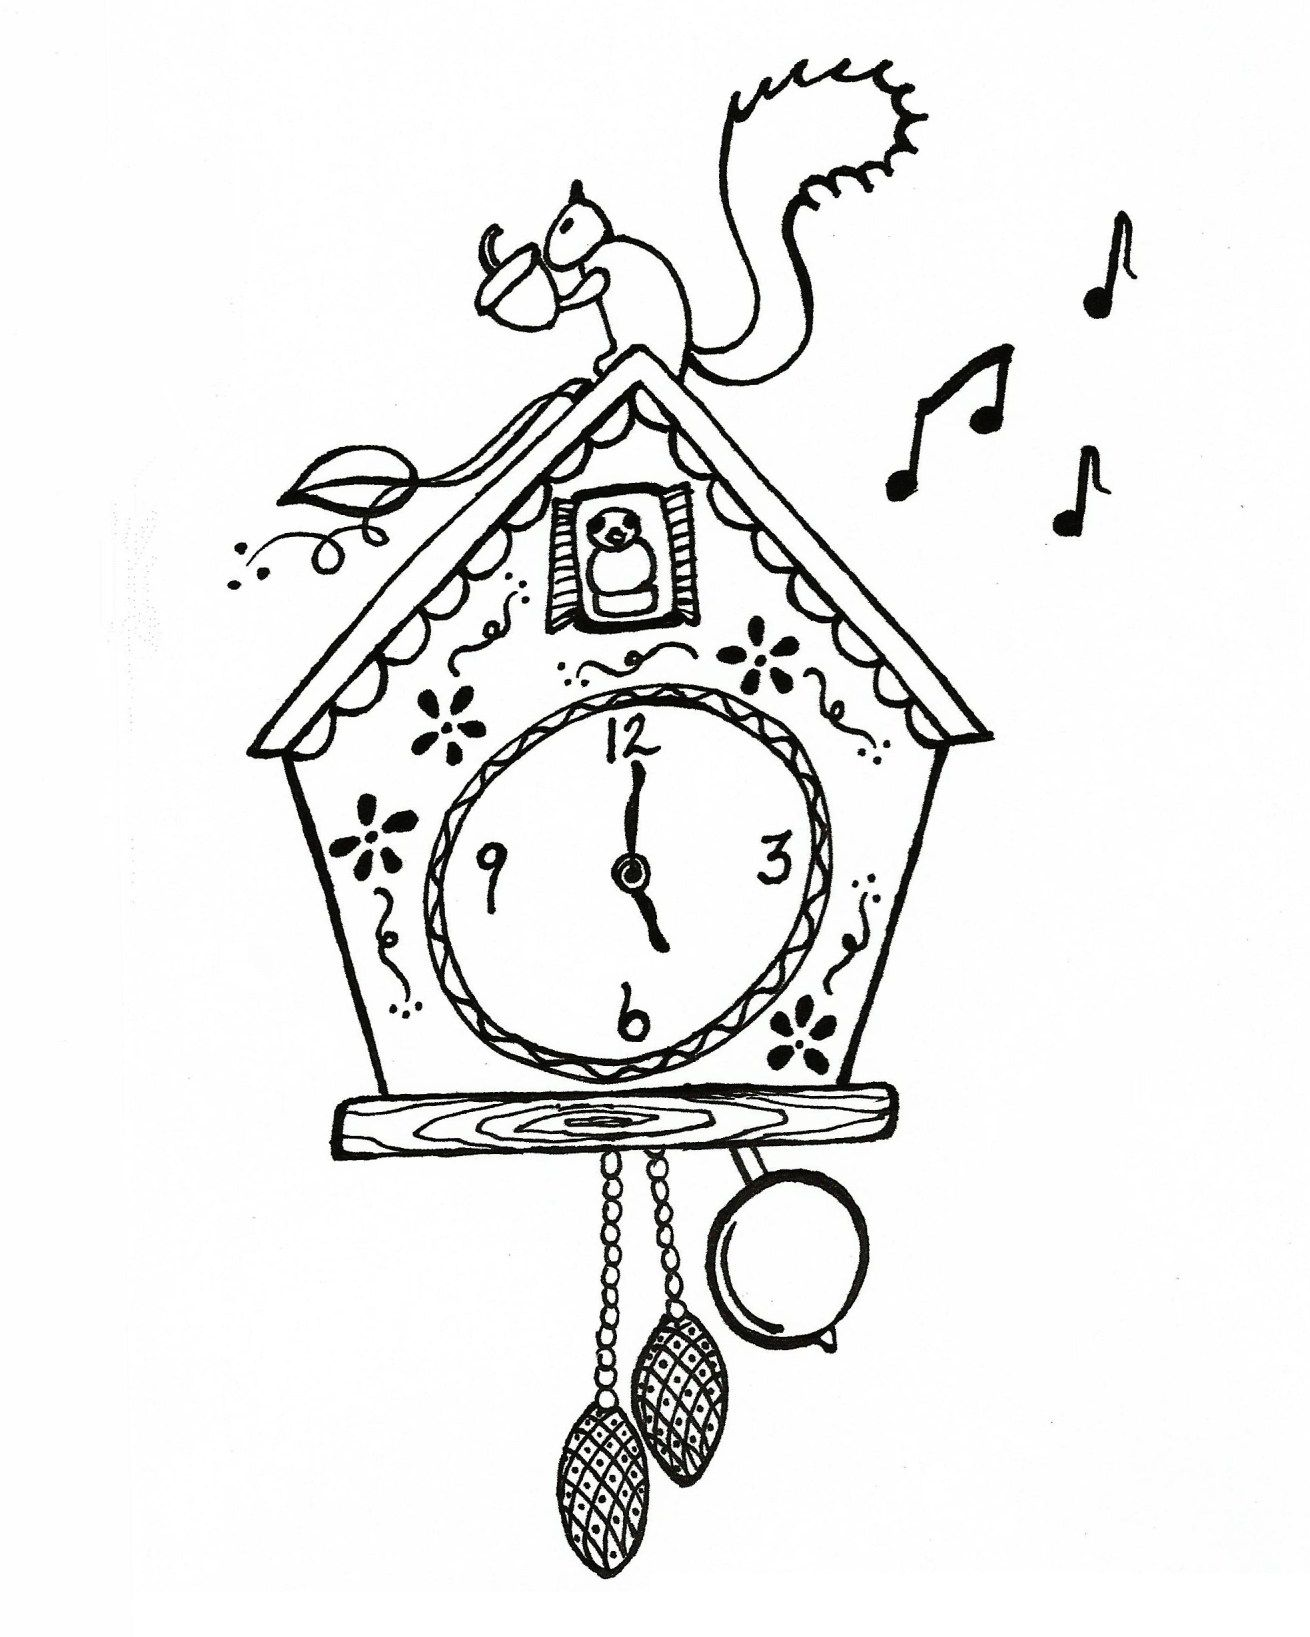 Cuckoo Clock Clock Drawings Coloring Pages For Kids Clock